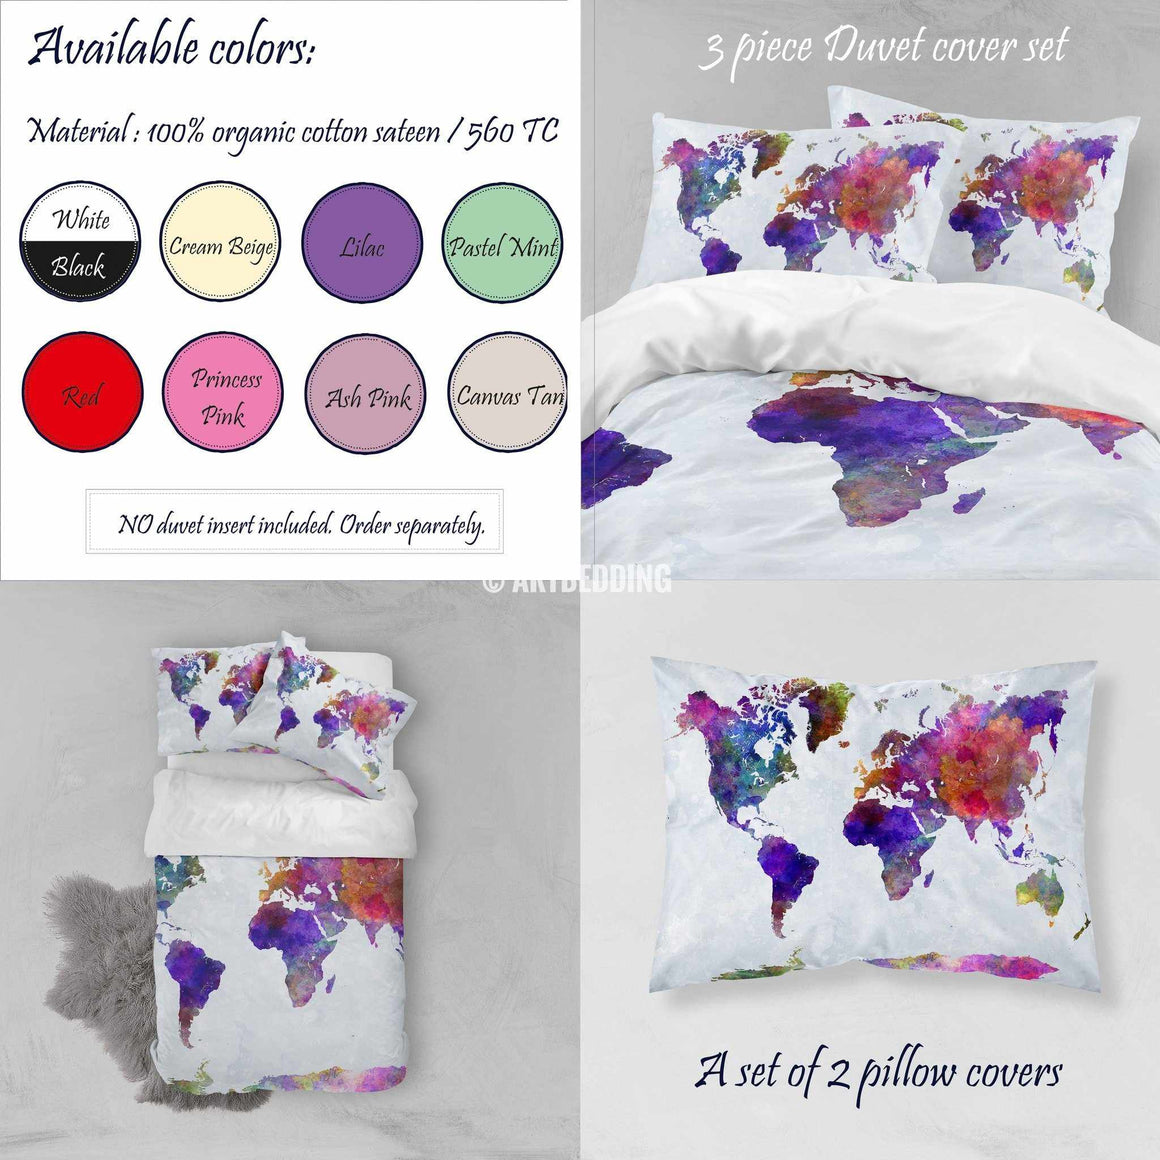 Watercolor world map bedding, Boho chic world map duvet cover set, Paint splashes duvet cover set, College bedding, dorm bedspread Bedding set